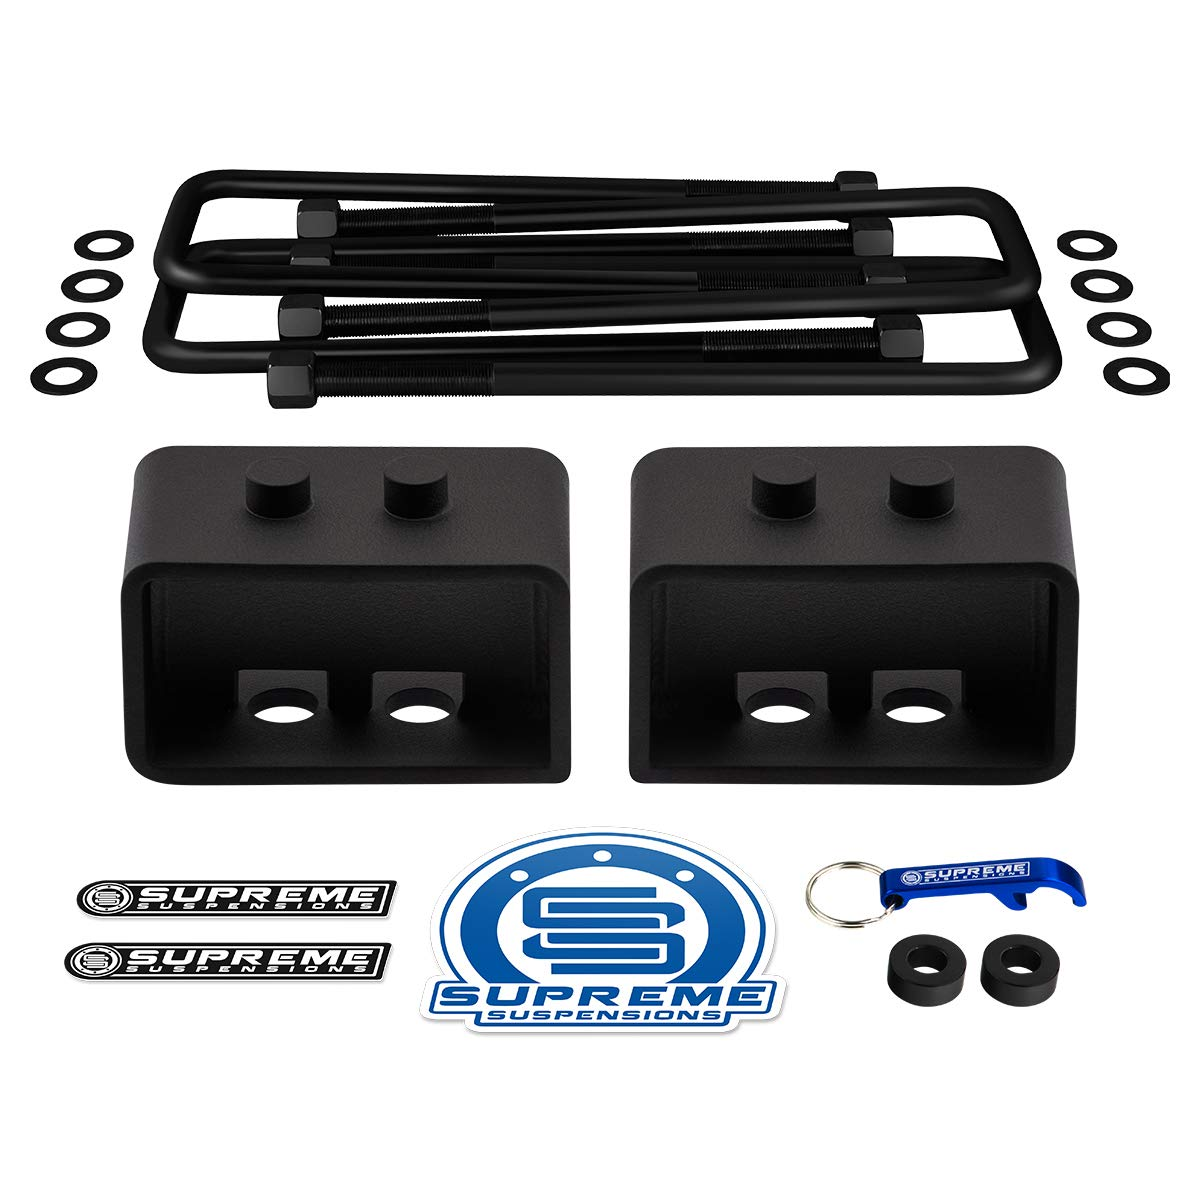 Supreme Suspensions 1.5 Inch Rear Tappered Steel Lift Blocks with Square U-Bolts 4WD Rear Leveling Kit for 2004-2019 Ford F-150